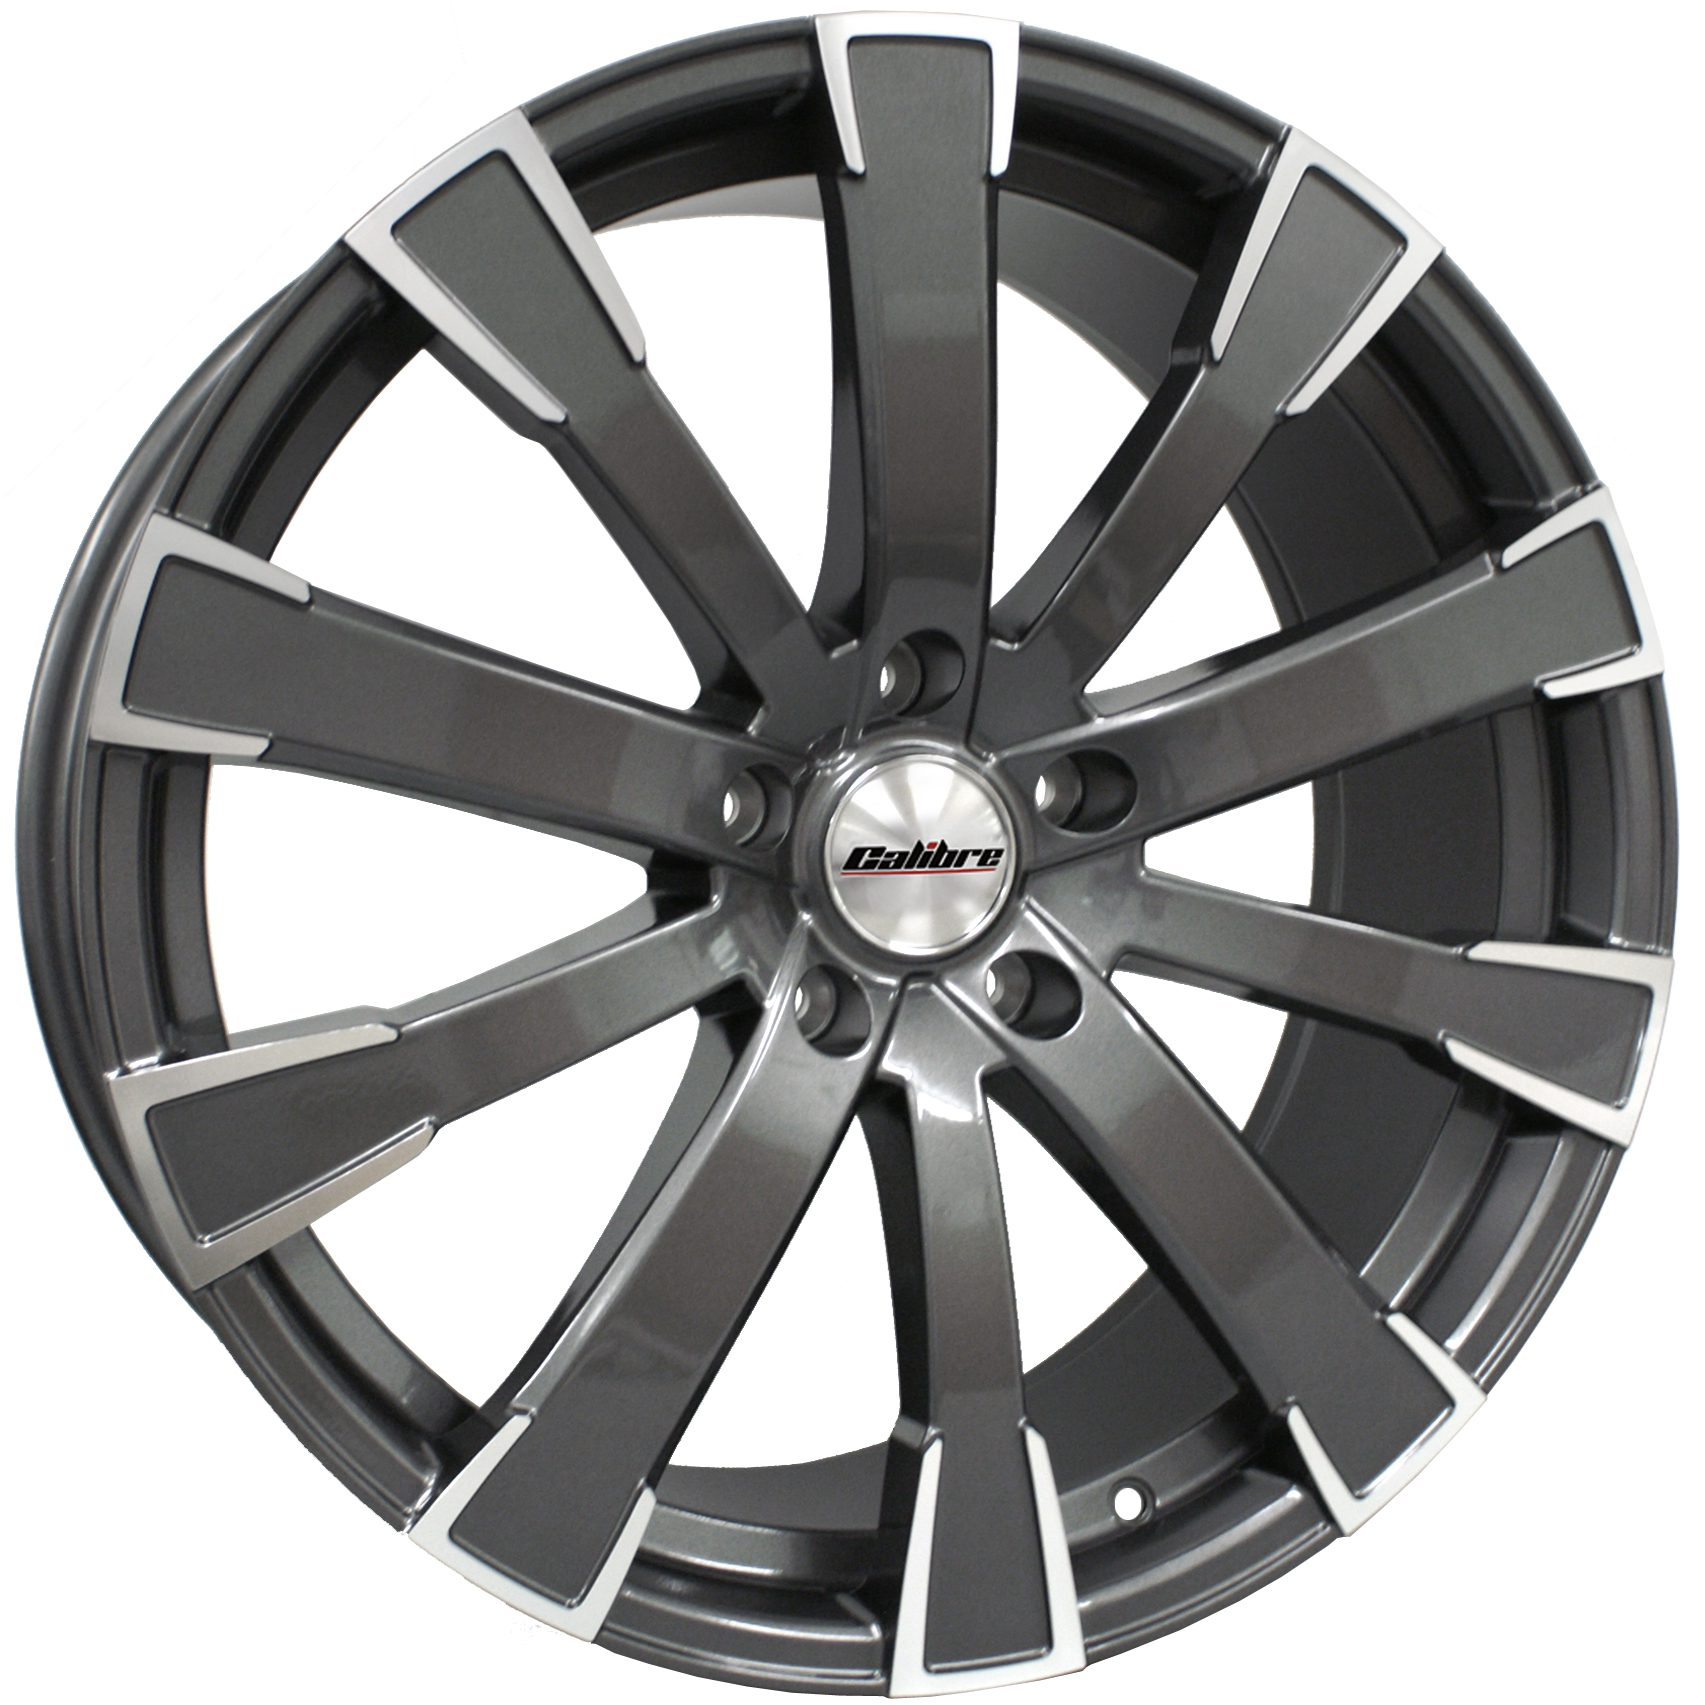 "Wheel Calibre Manhattan 8.5x20"" Gunmetal Polished Face 5x120 ET35"